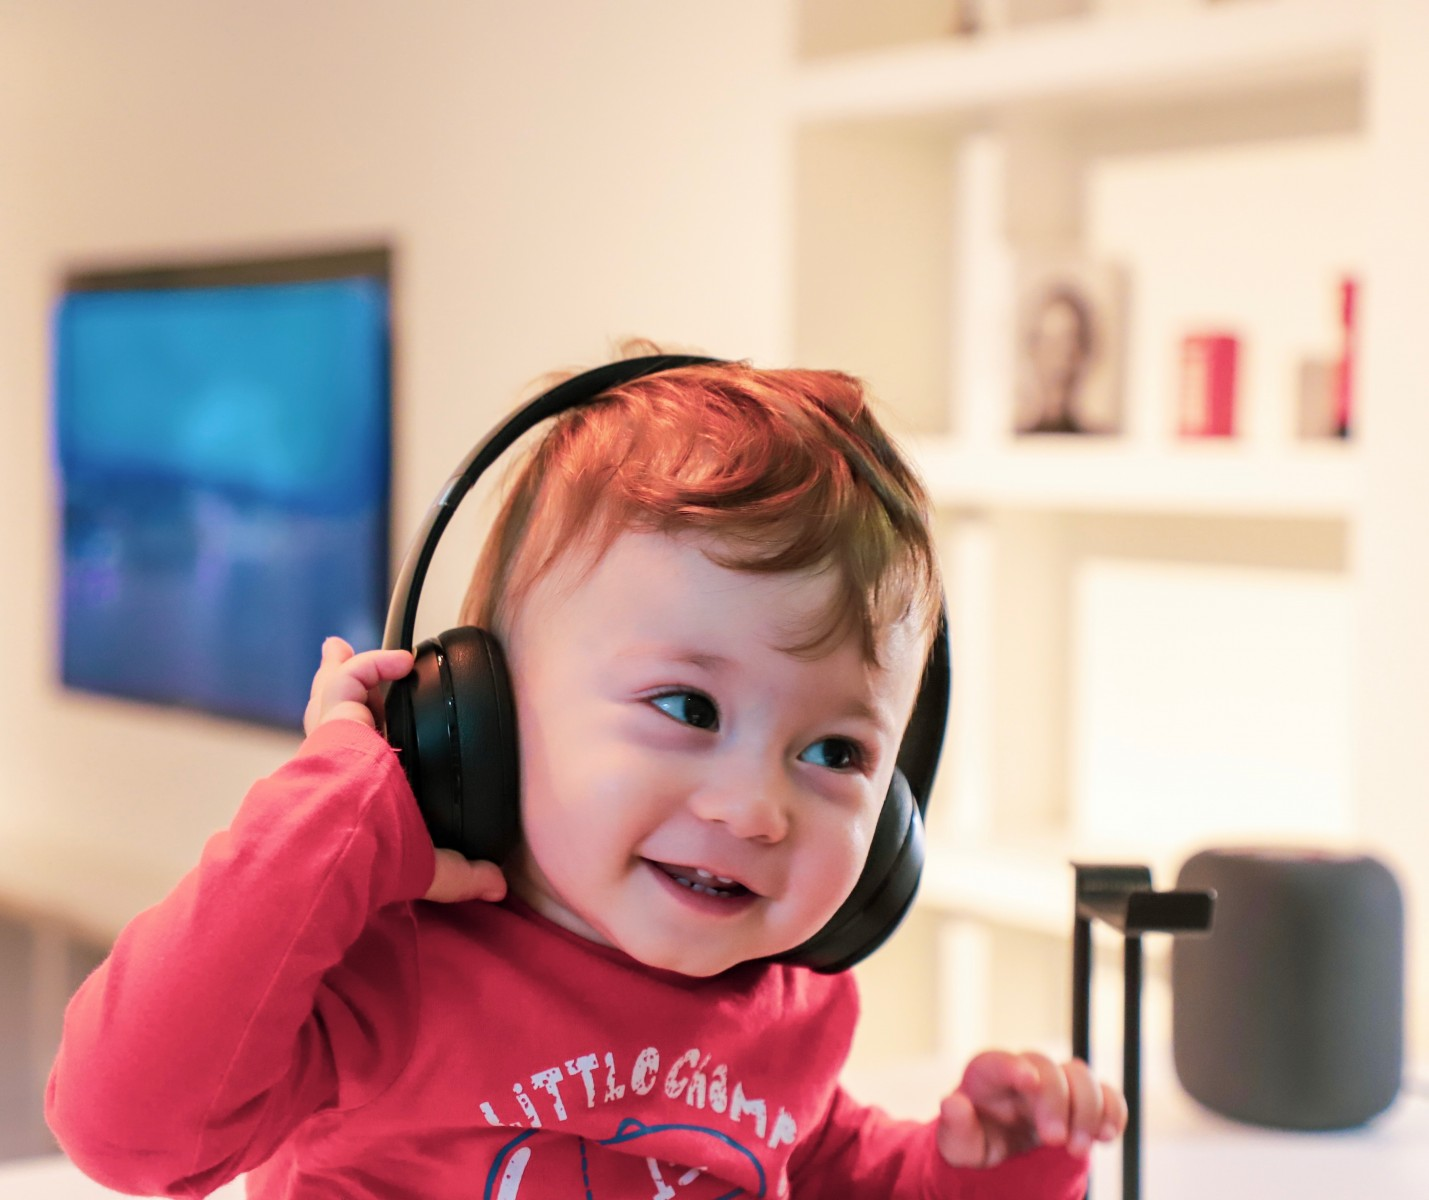 New study finds that babies repeat melodies and sounds from songs.